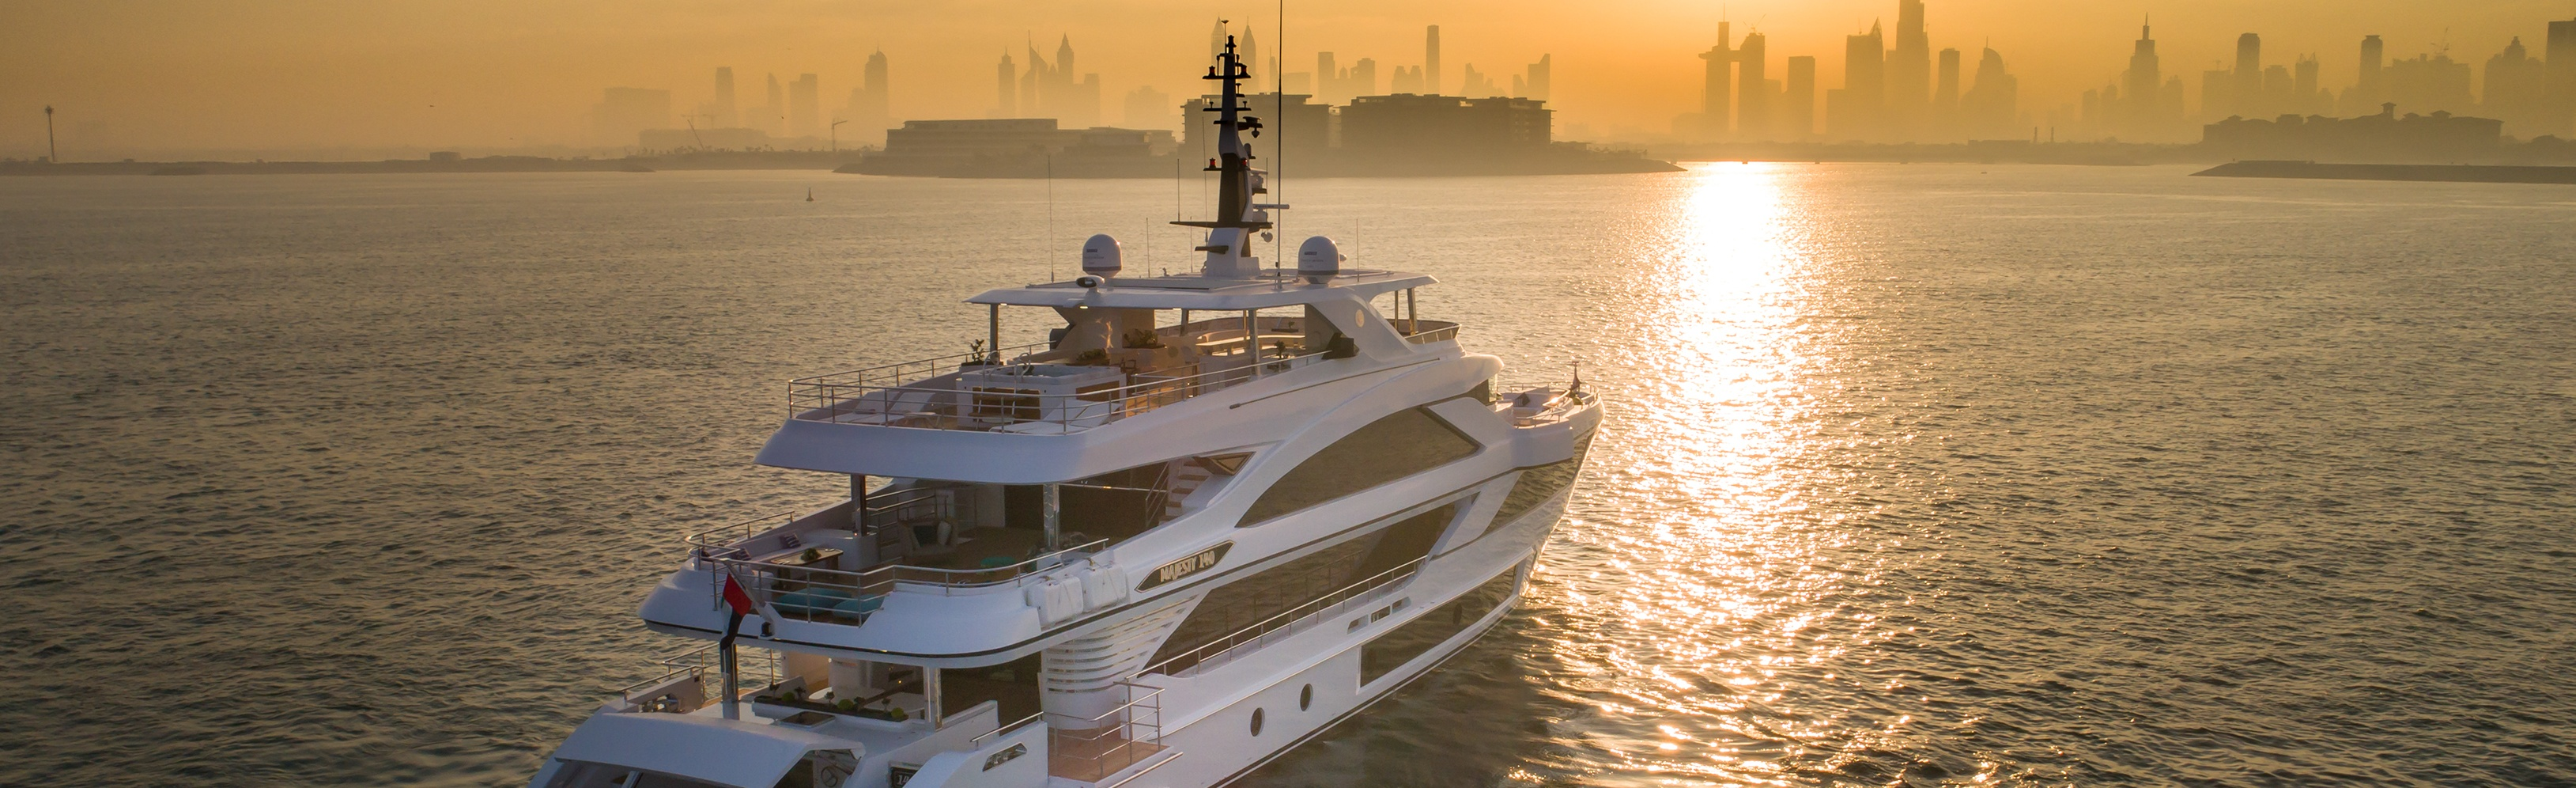 Majesty-140,-SuperYacht-Russia-magazine